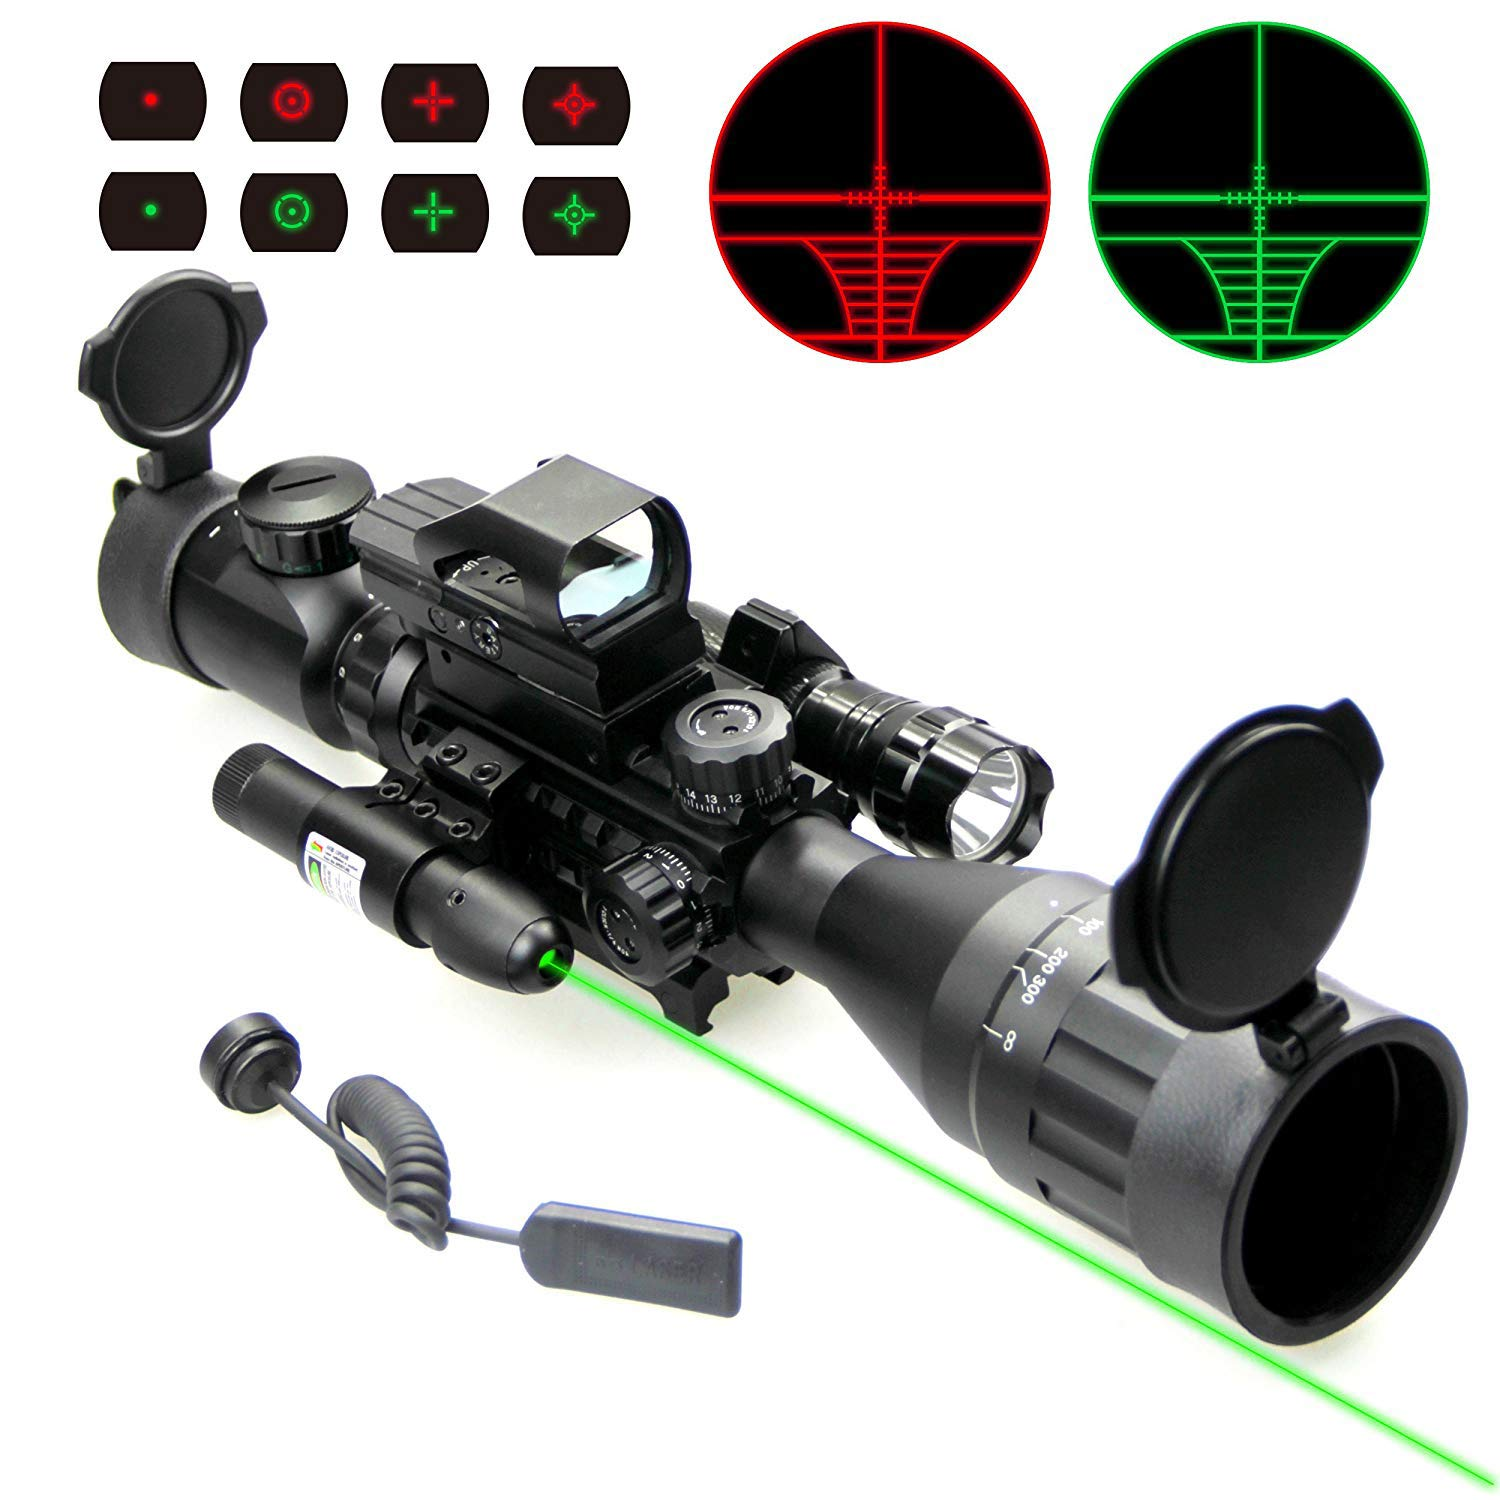 UUQ 4-16x50 Tactical Rifle Scope Red/Green Illuminated Range Finder Reticle W/RED(Green) Laser and Holographic Reflex Dot Sight (12 Month Warranty) 4-16X50 W/Green Laser & Flash Light by UUQ